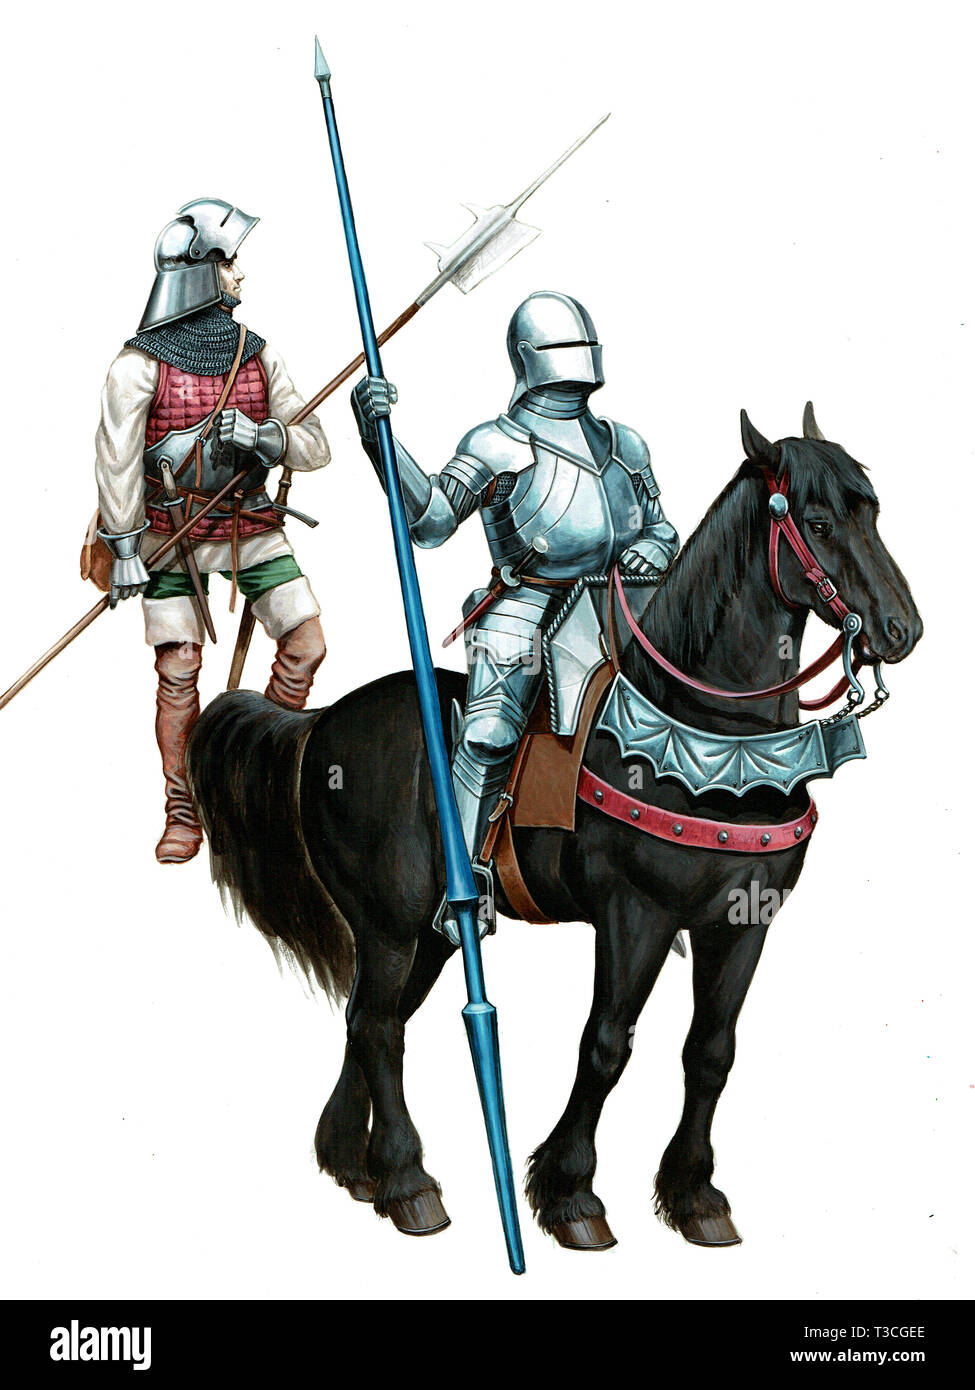 Armoured mounted knight and mercenary illustration. Isolated picture. - Stock Image